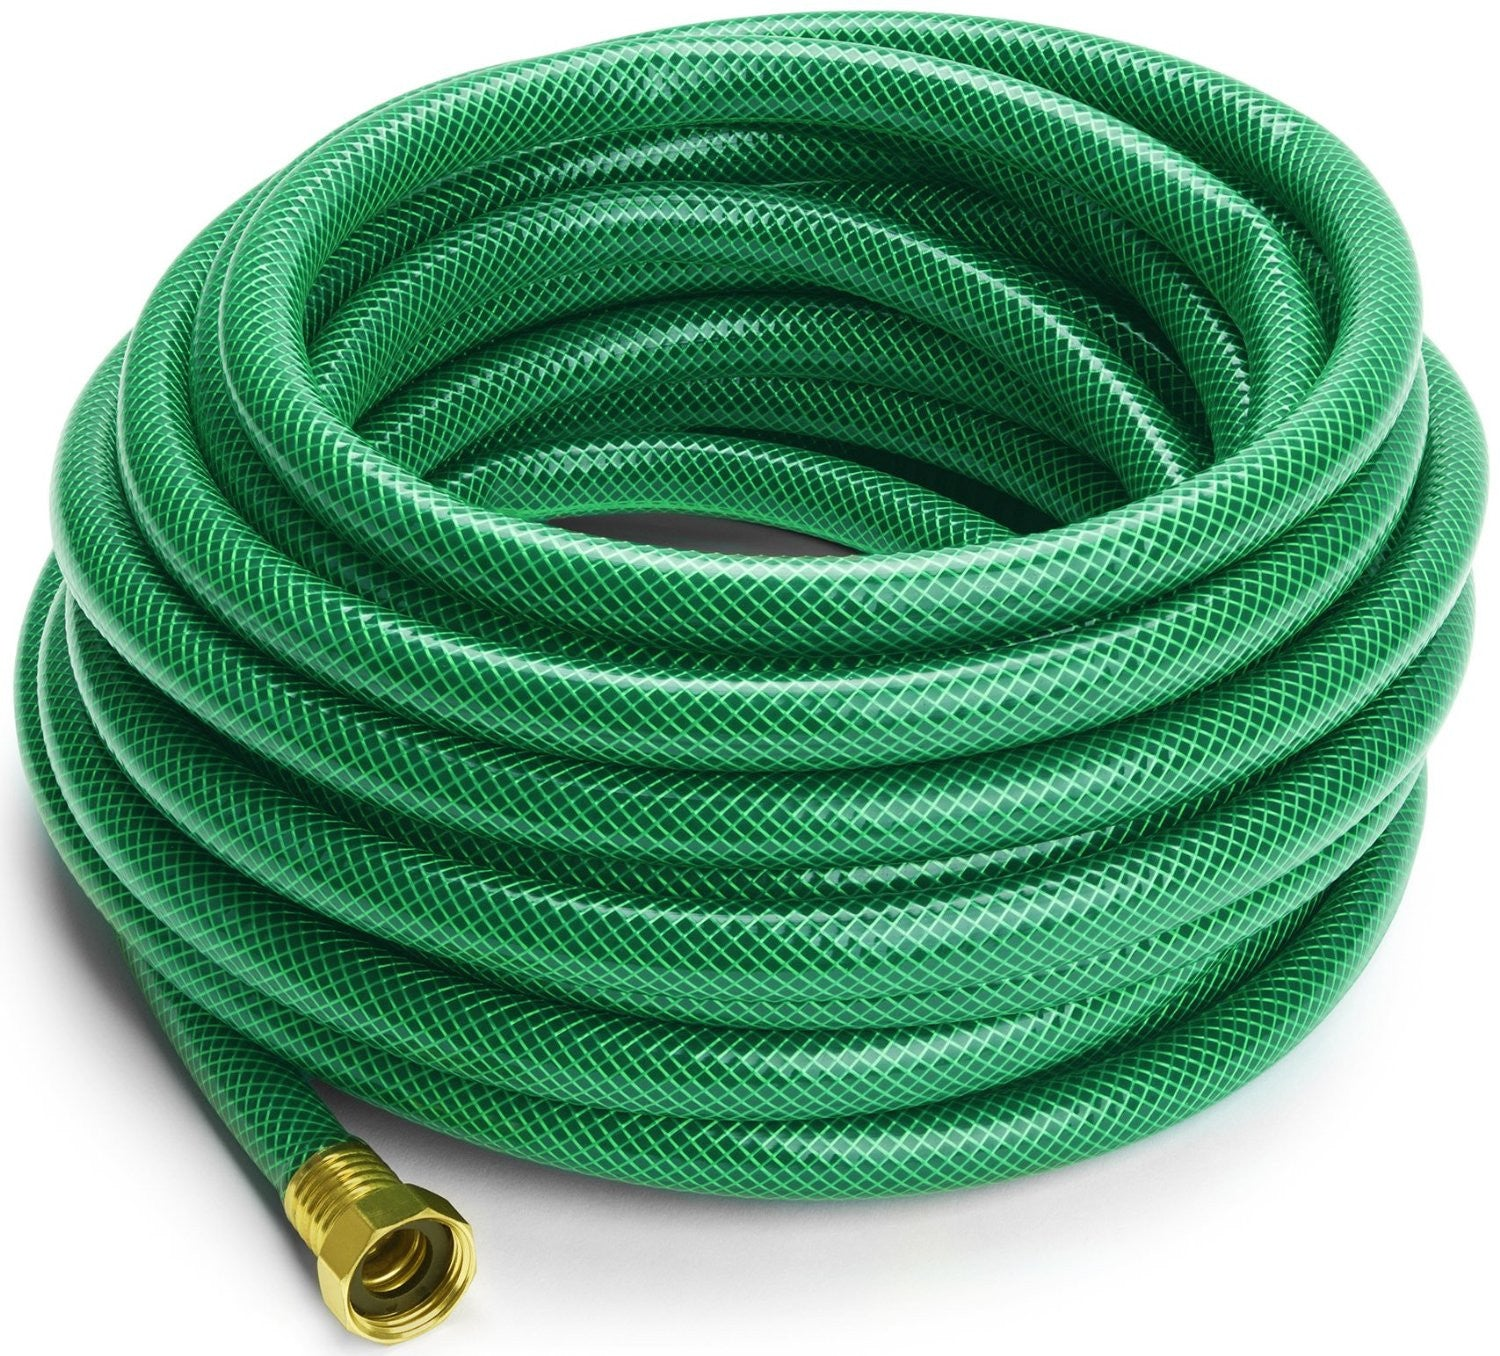 Ultra Flexible Garden Hose - 25 Feet